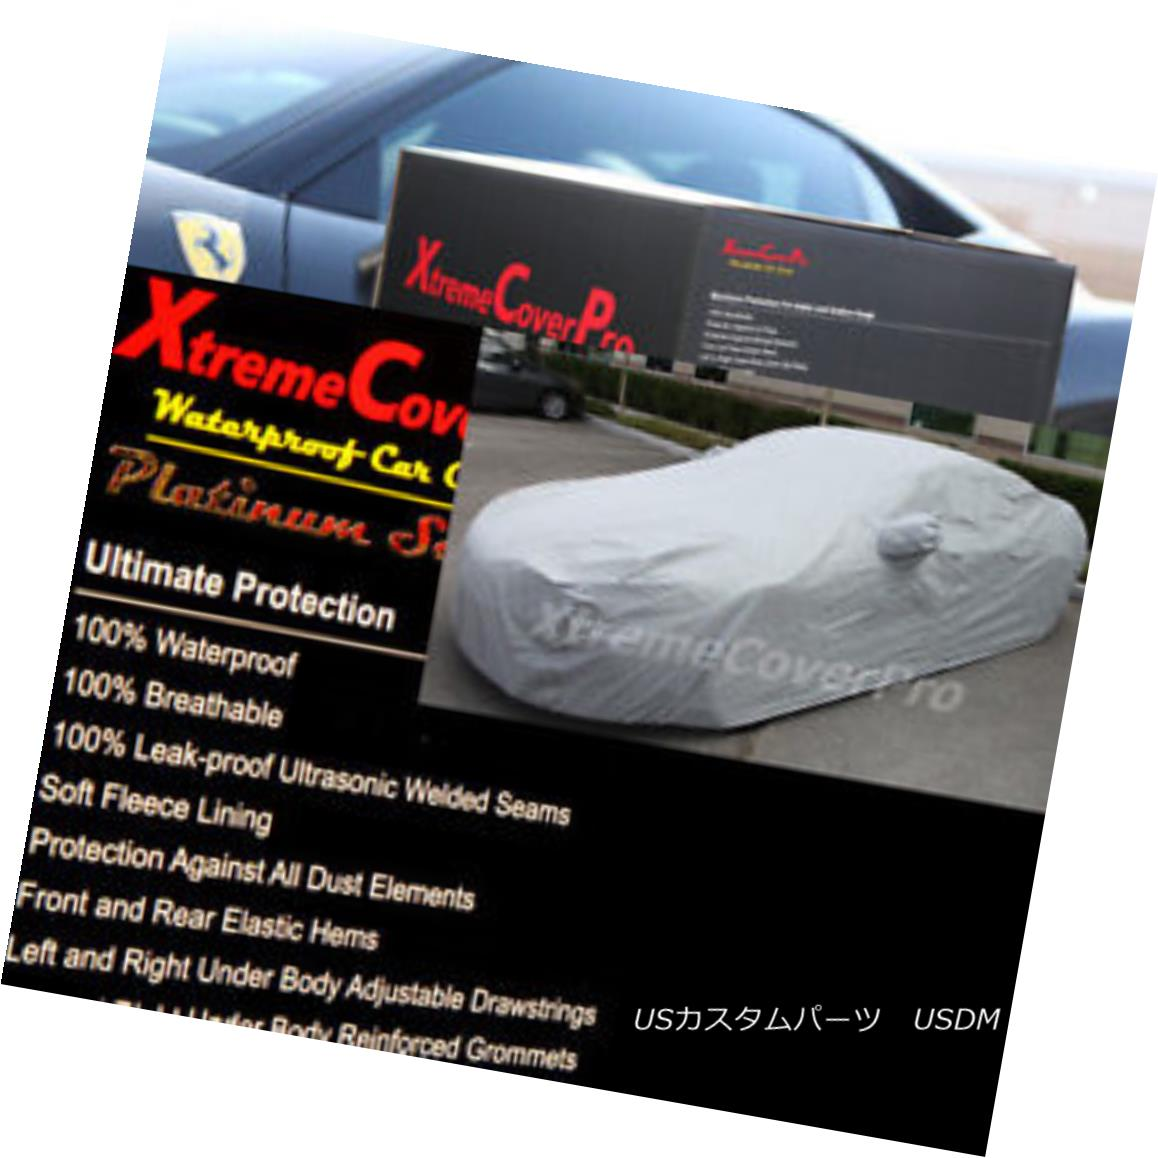 カーカバー 2015 LEXUS GS350 GS450 GS450H Waterproof Car Cover w/Mirror Pockets - Gray 2015 LEXUS GS350 GS450 GS450H防水カーカバー付き/ミラーポケット - グレー